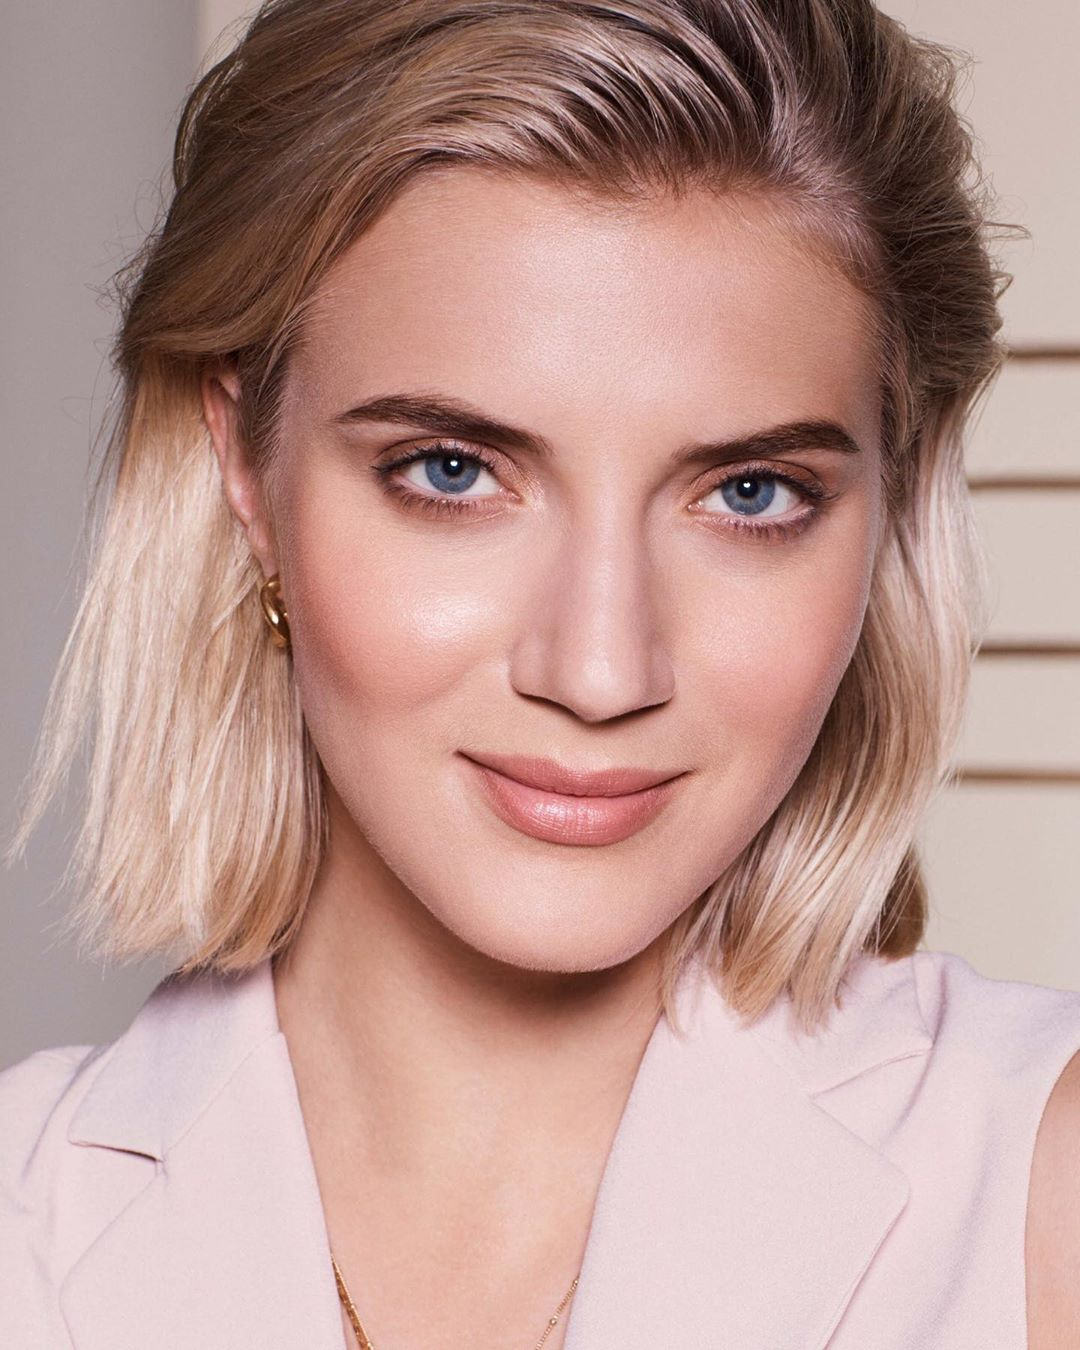 Max Factor - Miracle Second Skin foundation is suitable for all skin types, including those with sensitive skin AND it's clinically proven to support skin renewal. It also contains SPF20 for added pro...